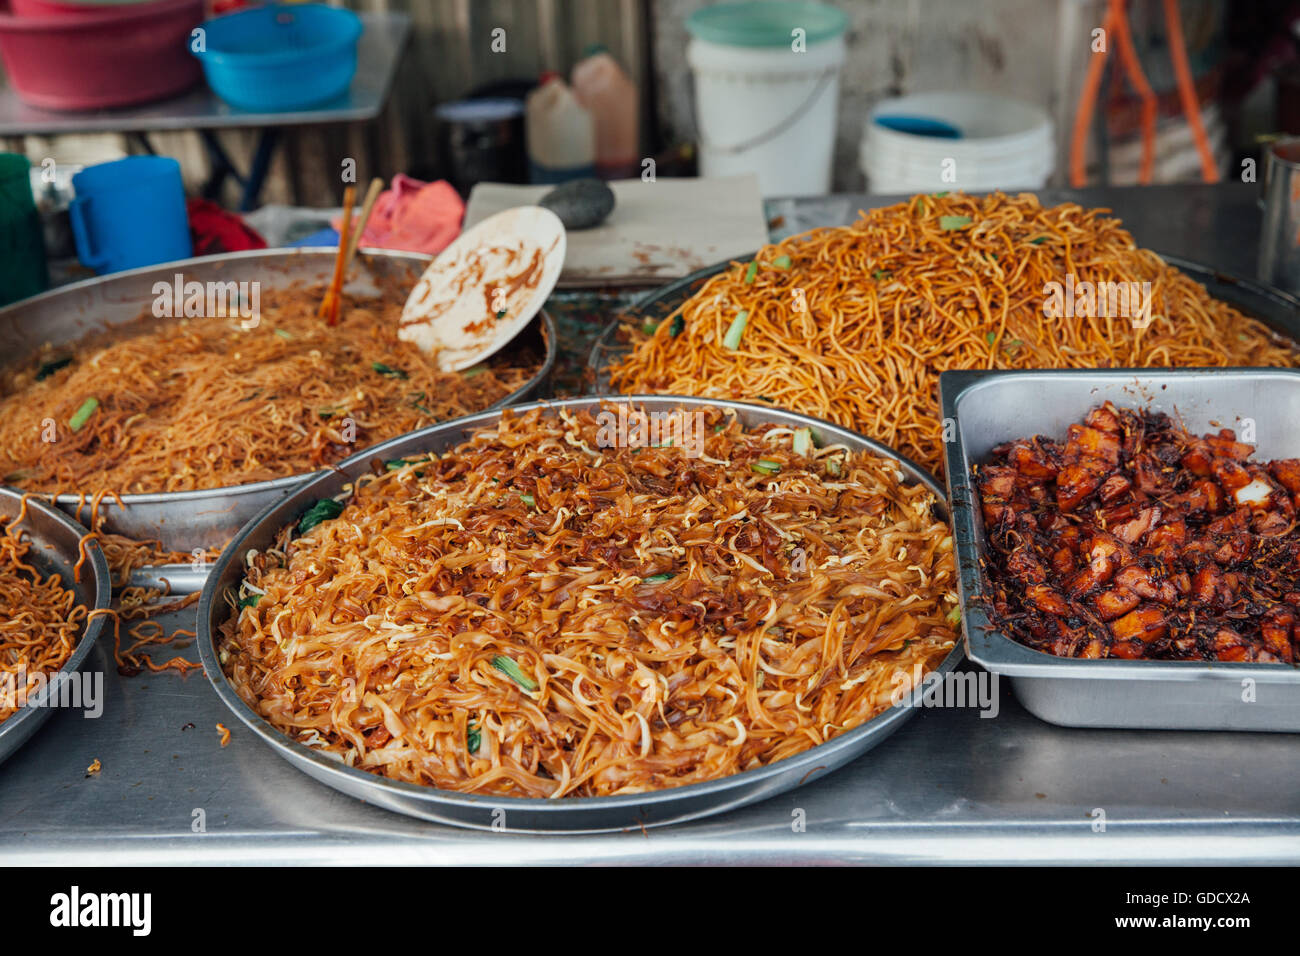 Kway teow fried noodles at the Kimberly Street Food Night Market, George Town, Penang, Malaysia. - Stock Image